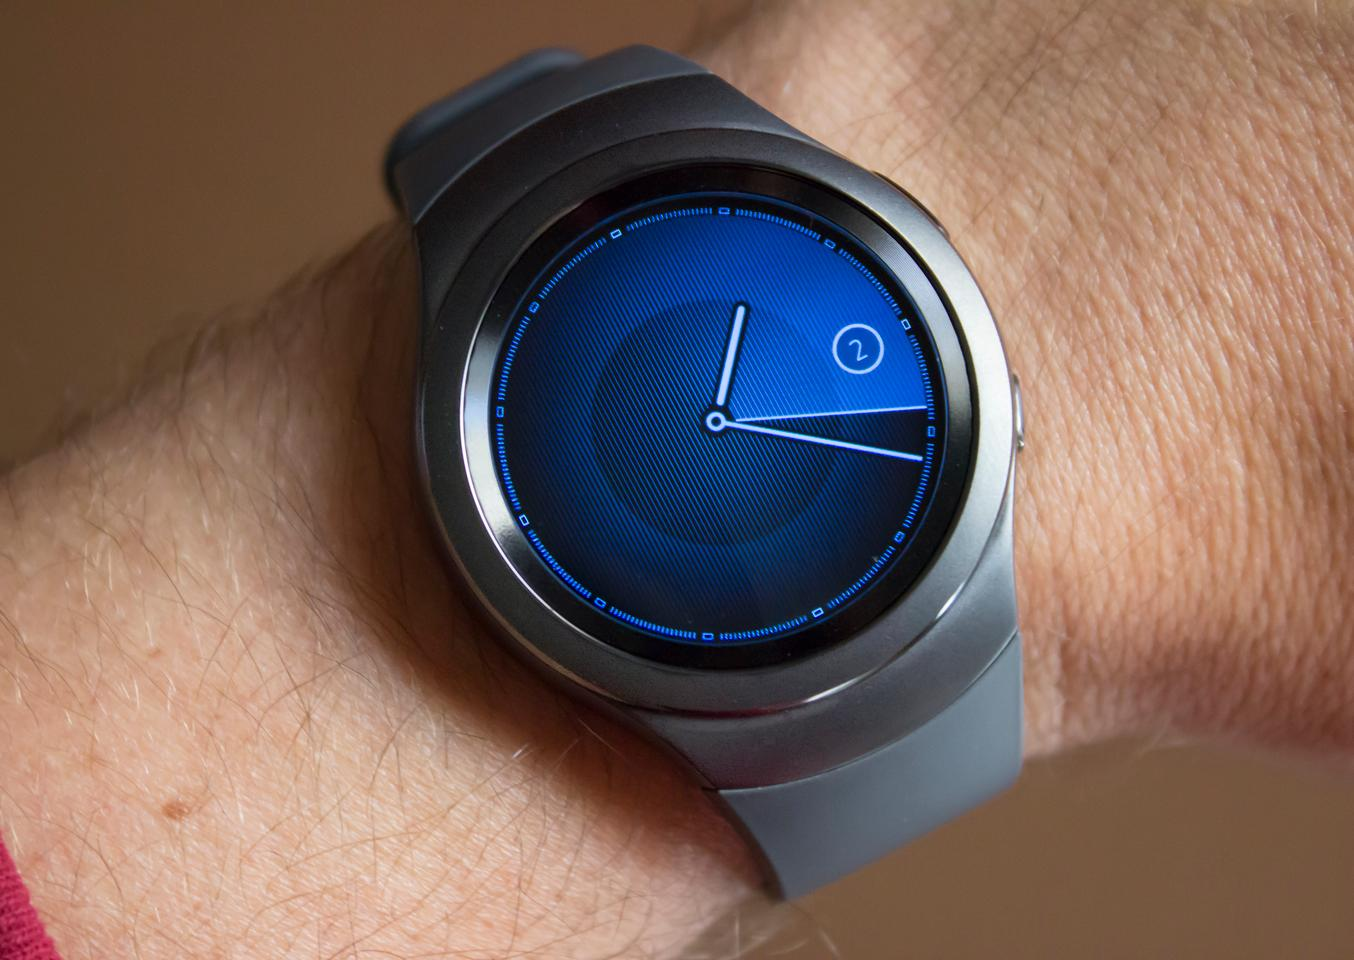 The 1.2-inch, fully round display on the Samsung Gear S2